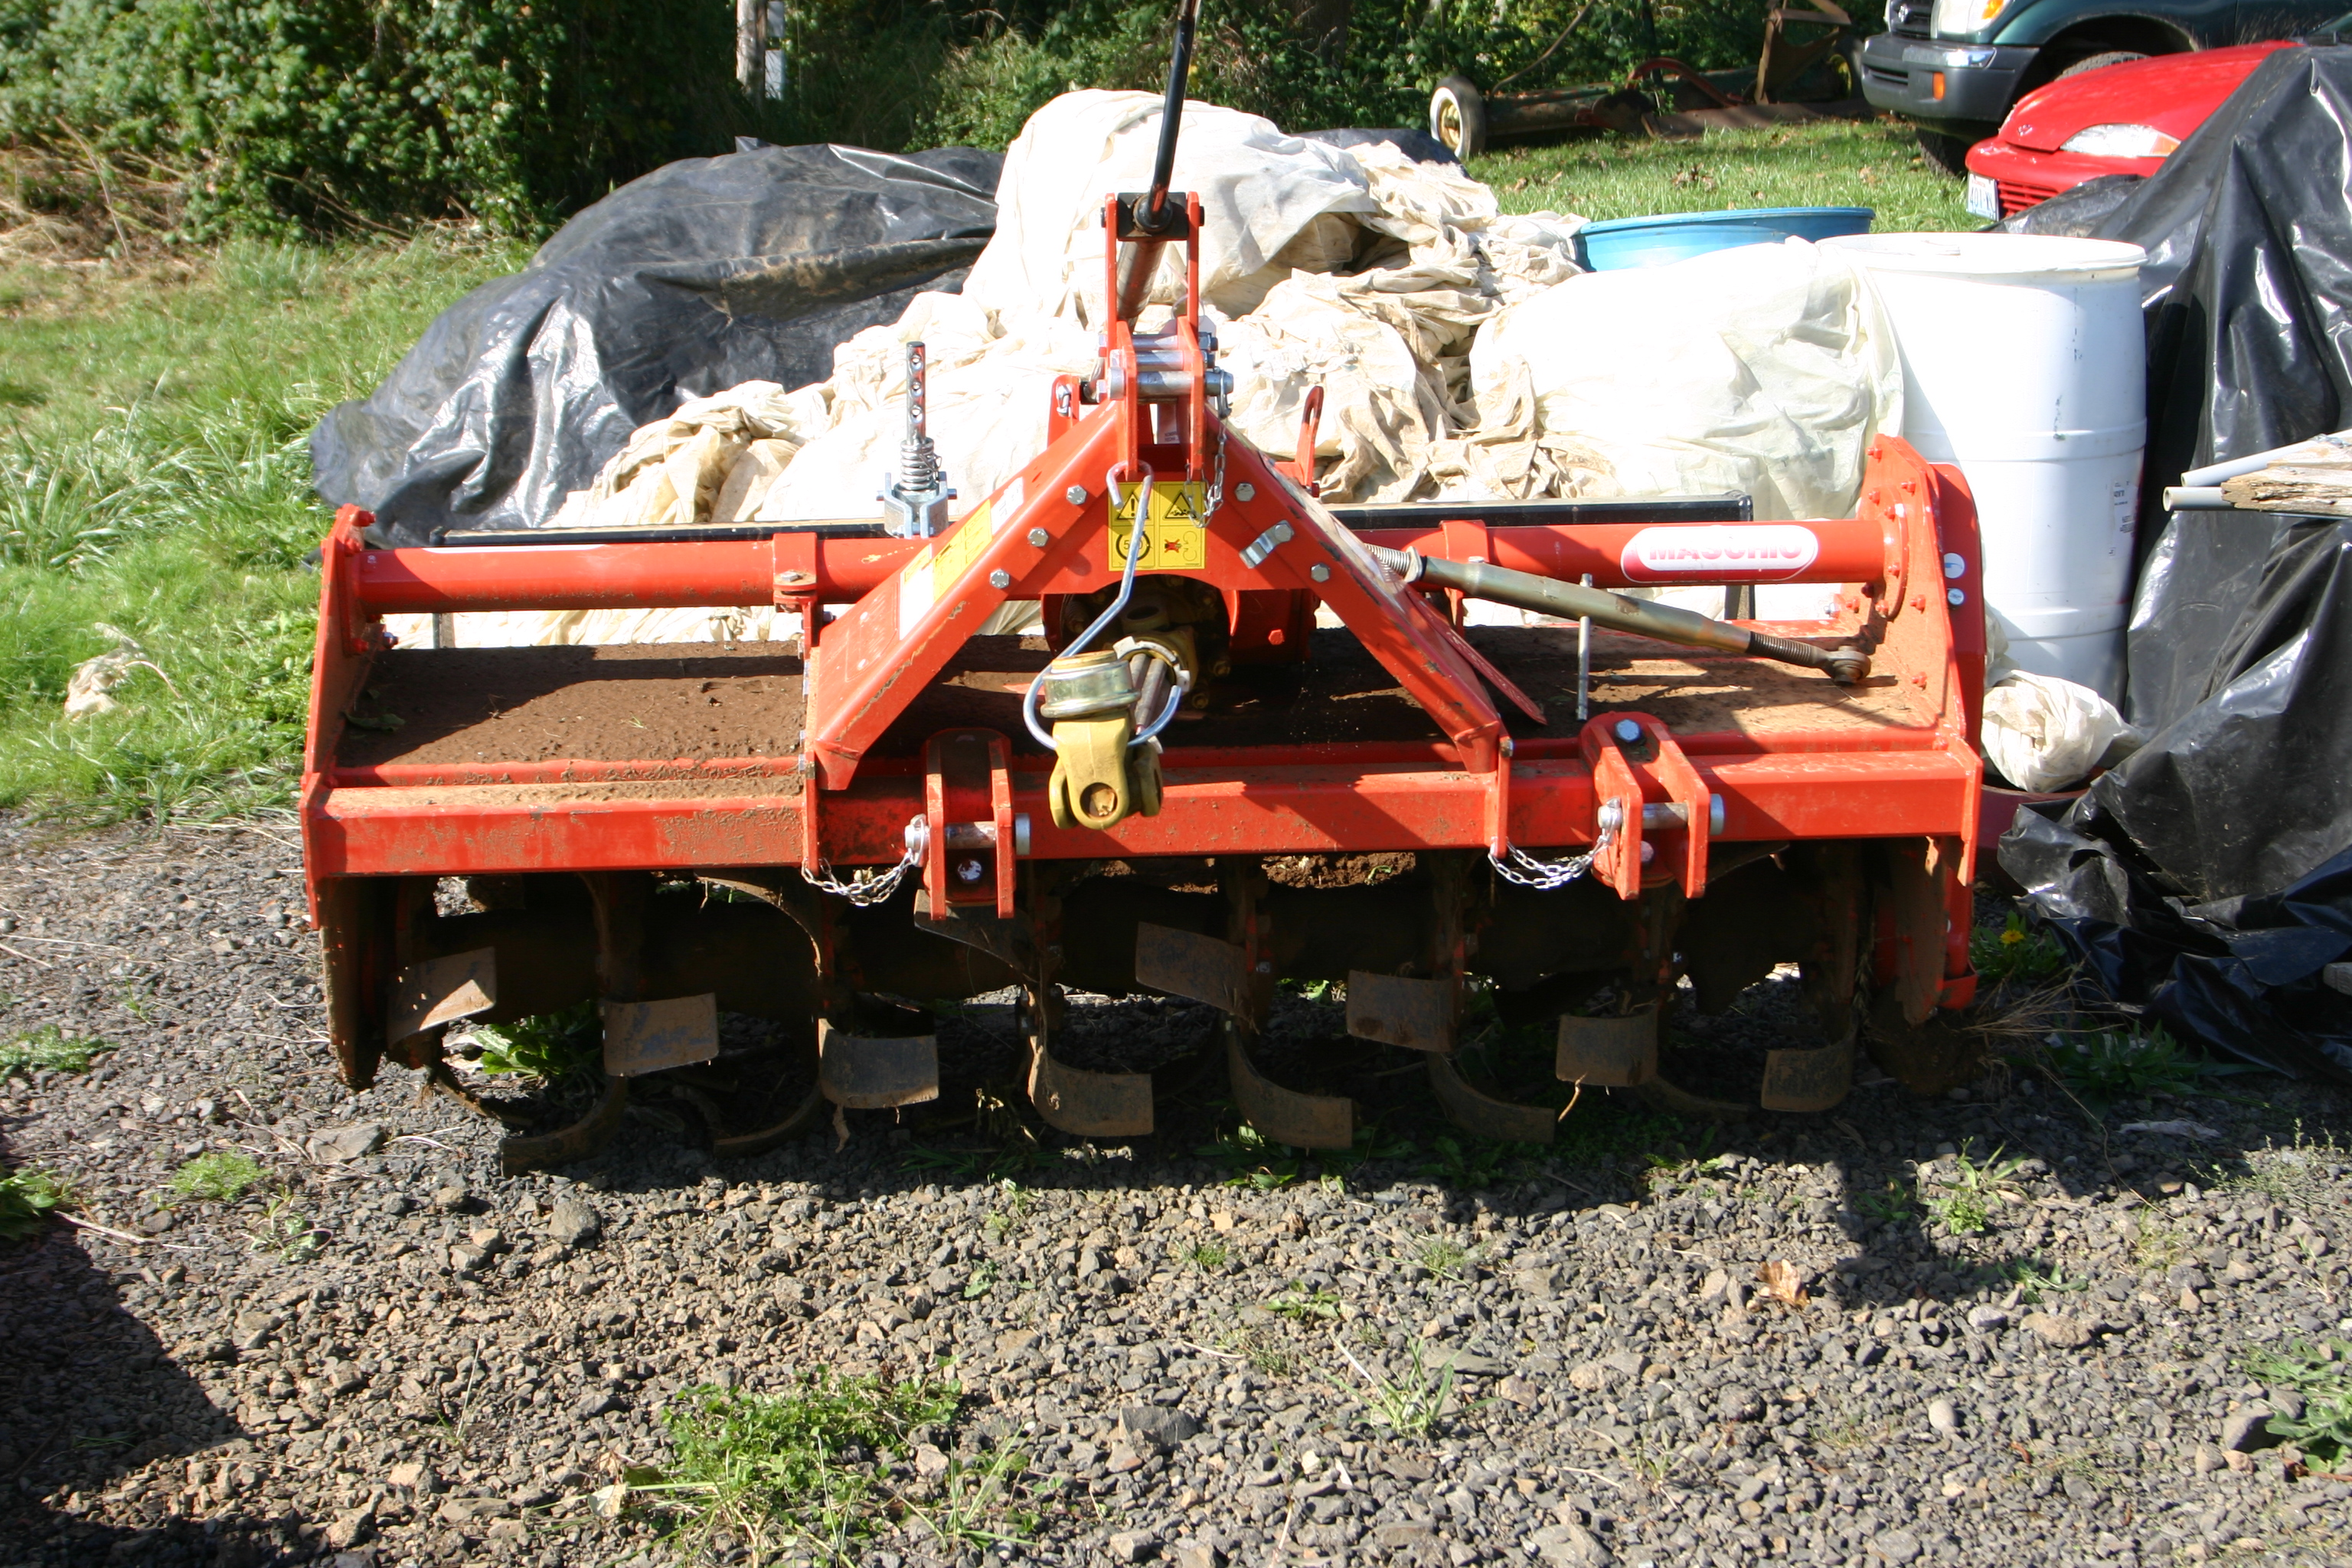 Equipment for Tilling and Cultivating   Food Systems